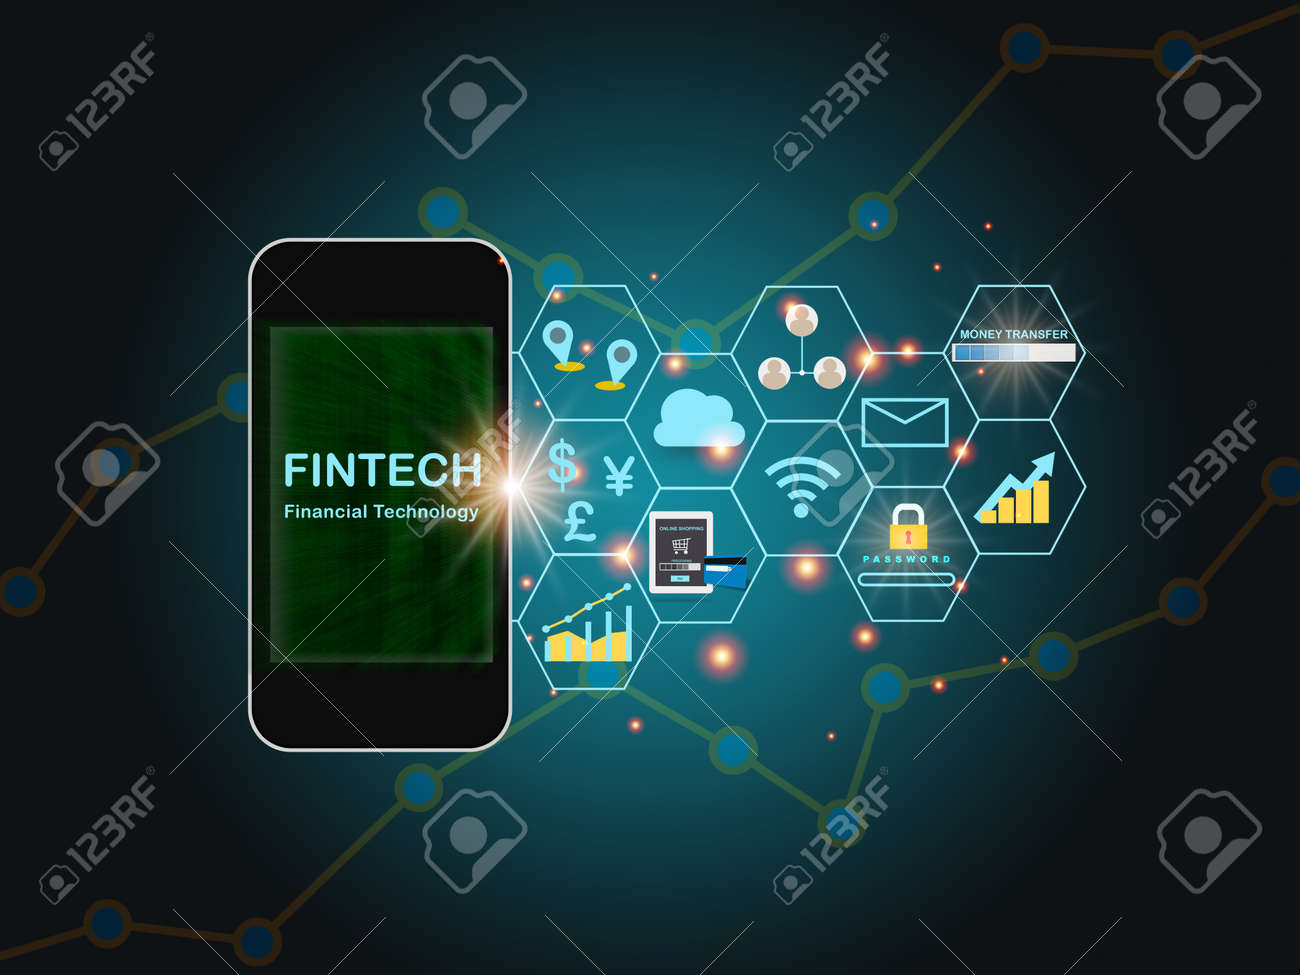 Financial technology words on smart phone screen with fintech theme background. Investment technology concept and internet of thing idea - 157744812